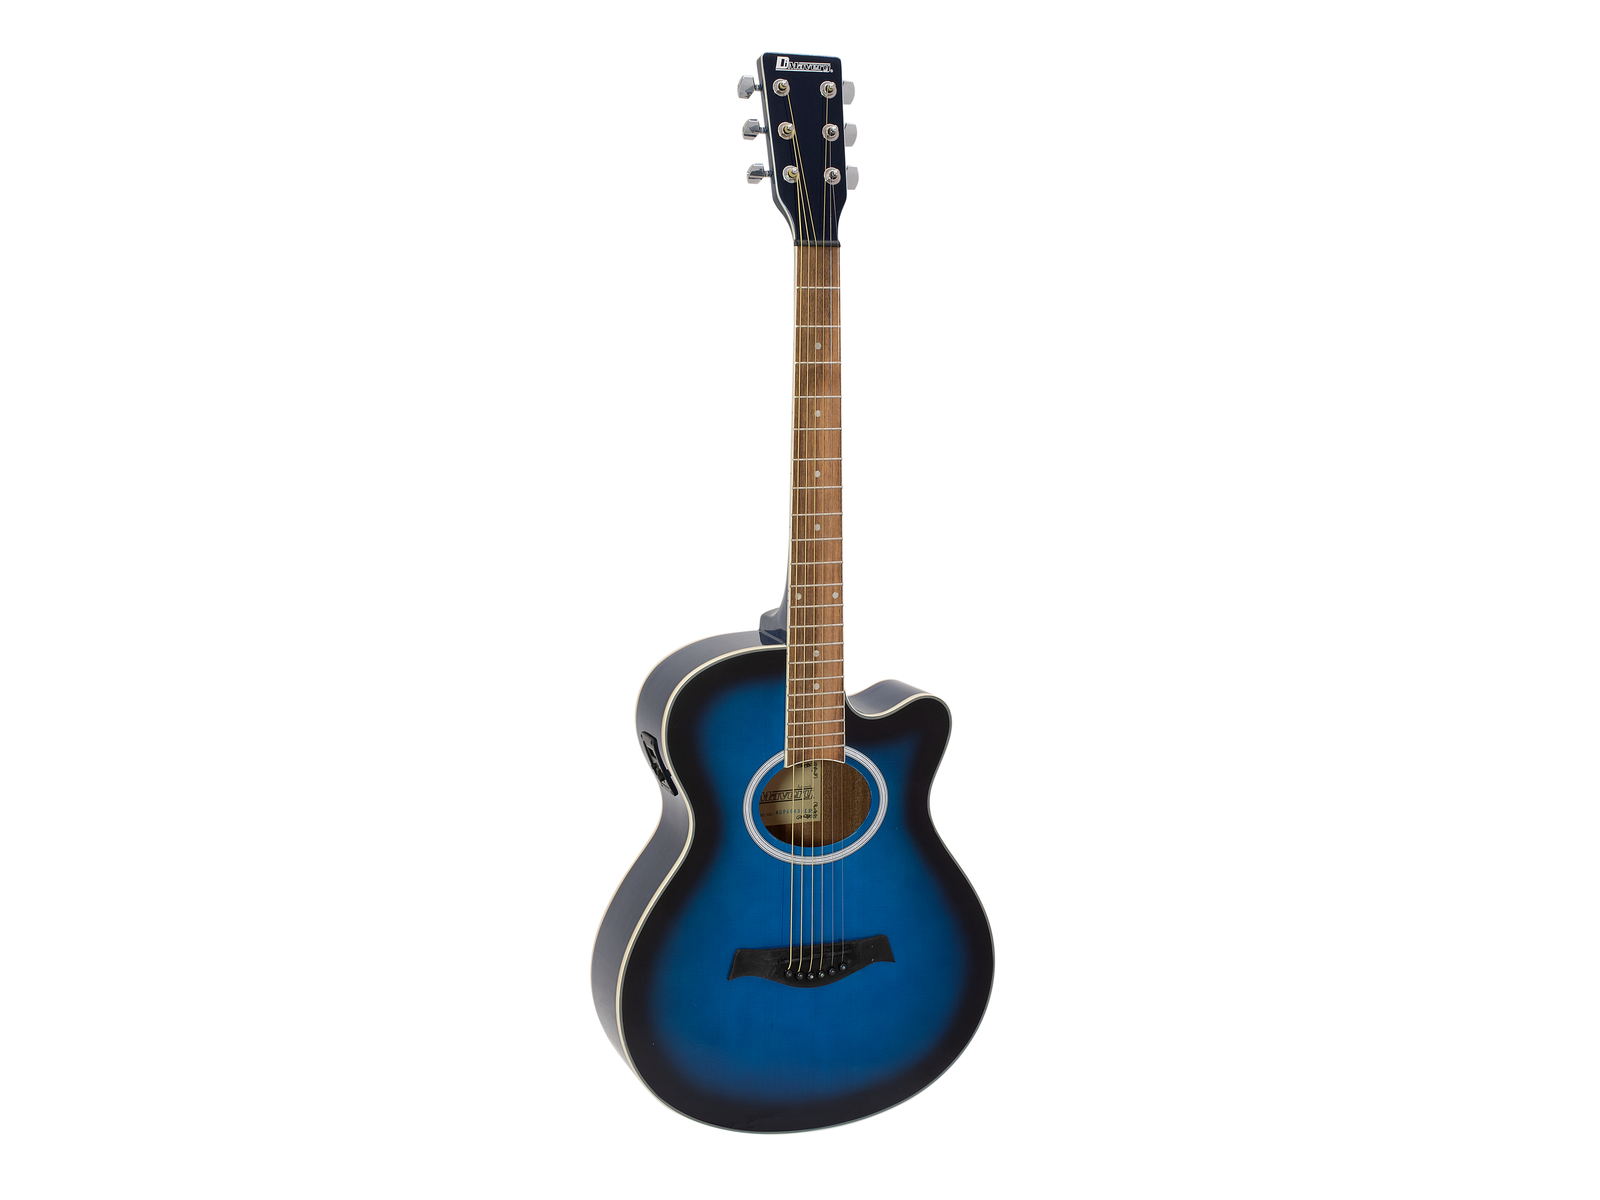 DIMAVERY AW-400 Occidentale chitarra, blueburst